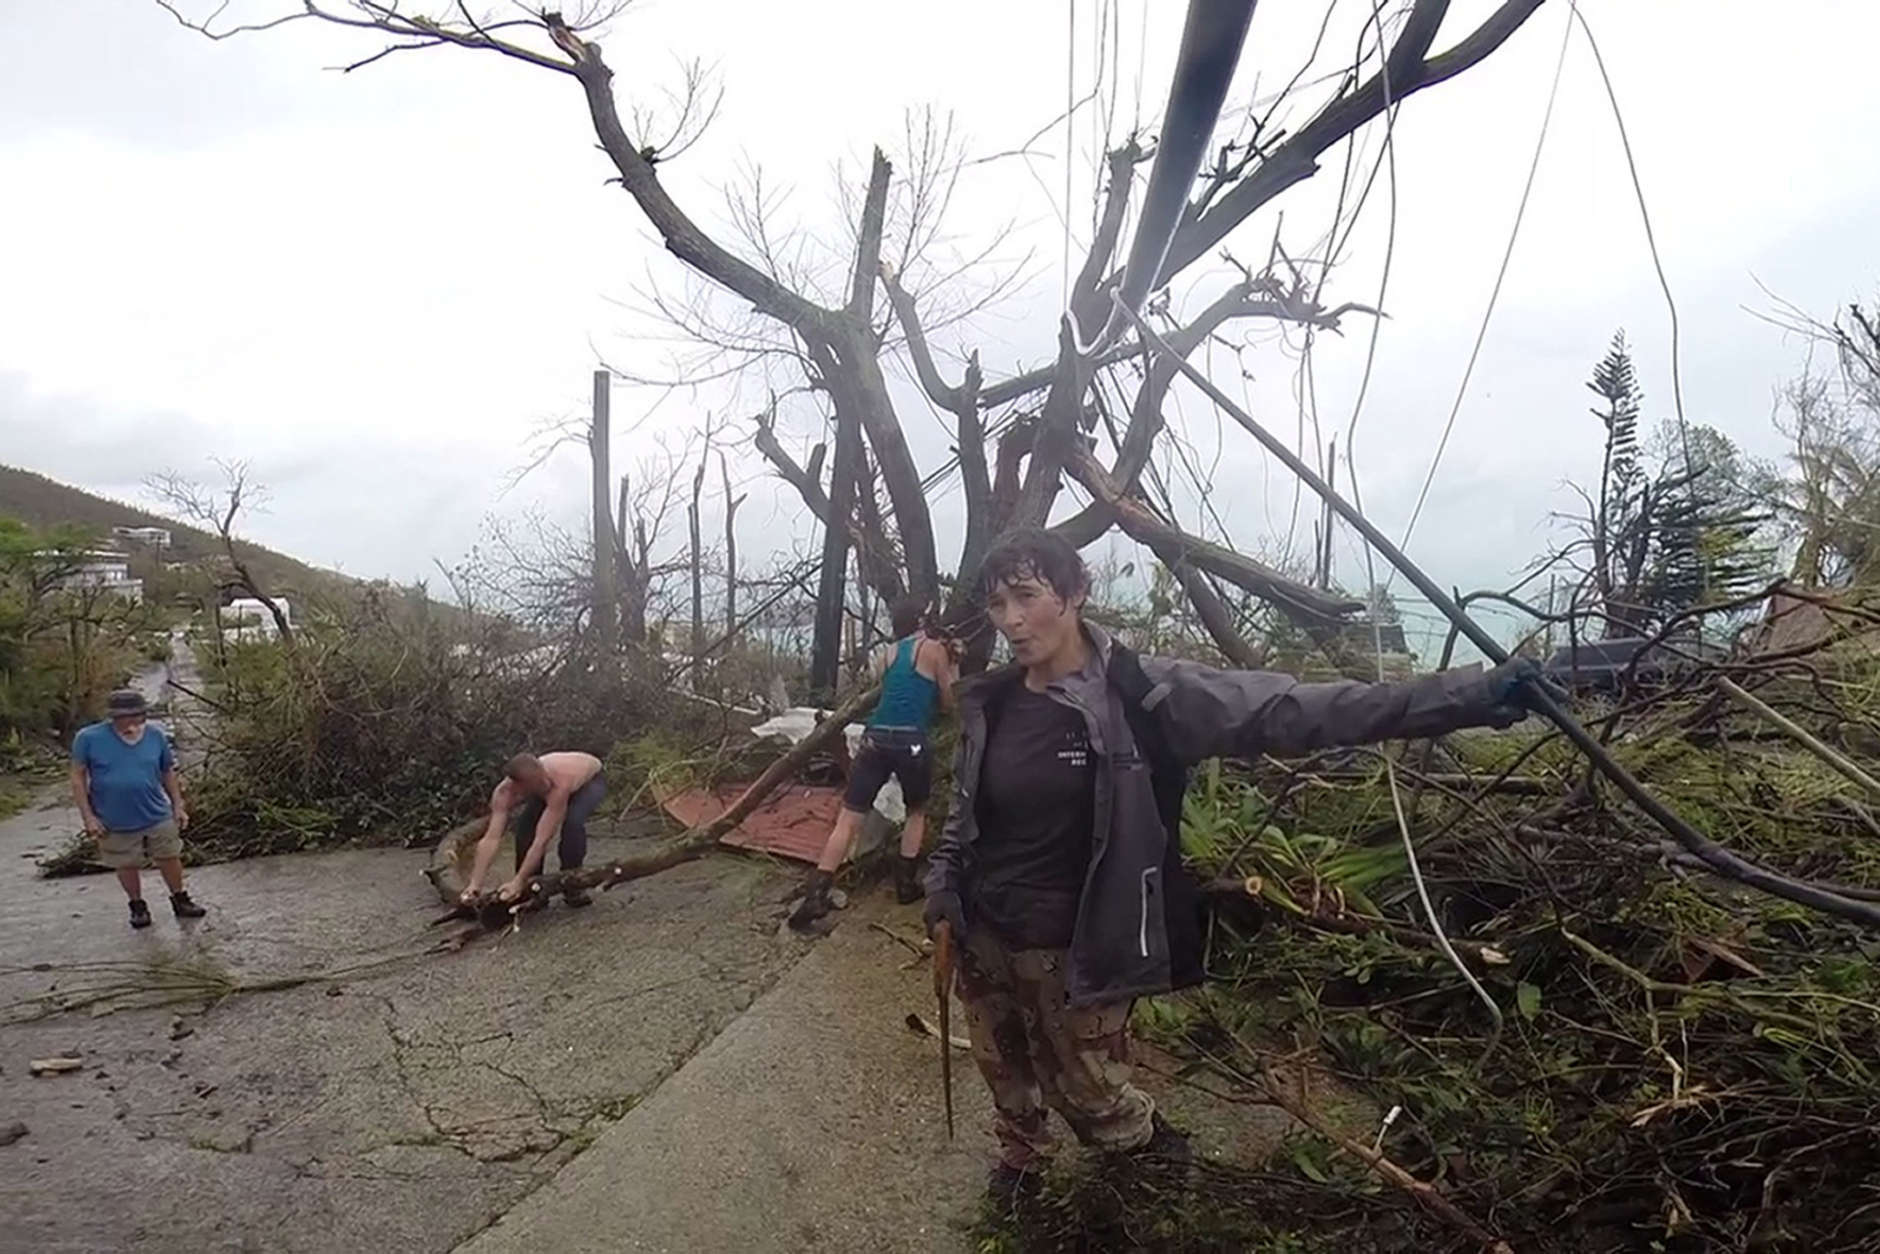 In this image made from video, neighbors clear debris from the road in St. Thomas, U.S. Virgin Islands, Thursday, Sept. 7, 2017. Hurricane Irma weakened slightly Thursday with sustained winds of 175 mph, according to the National Hurricane Center. The storm boasted 185 mph winds for a more than 24-hour period, making it the strongest storm ever recorded in the Atlantic Ocean. The storm was expected to arrive in Cuba by Friday. It could hit the Florida mainland by late Saturday, according to hurricane center models. (AP Photo/Ian Brown)